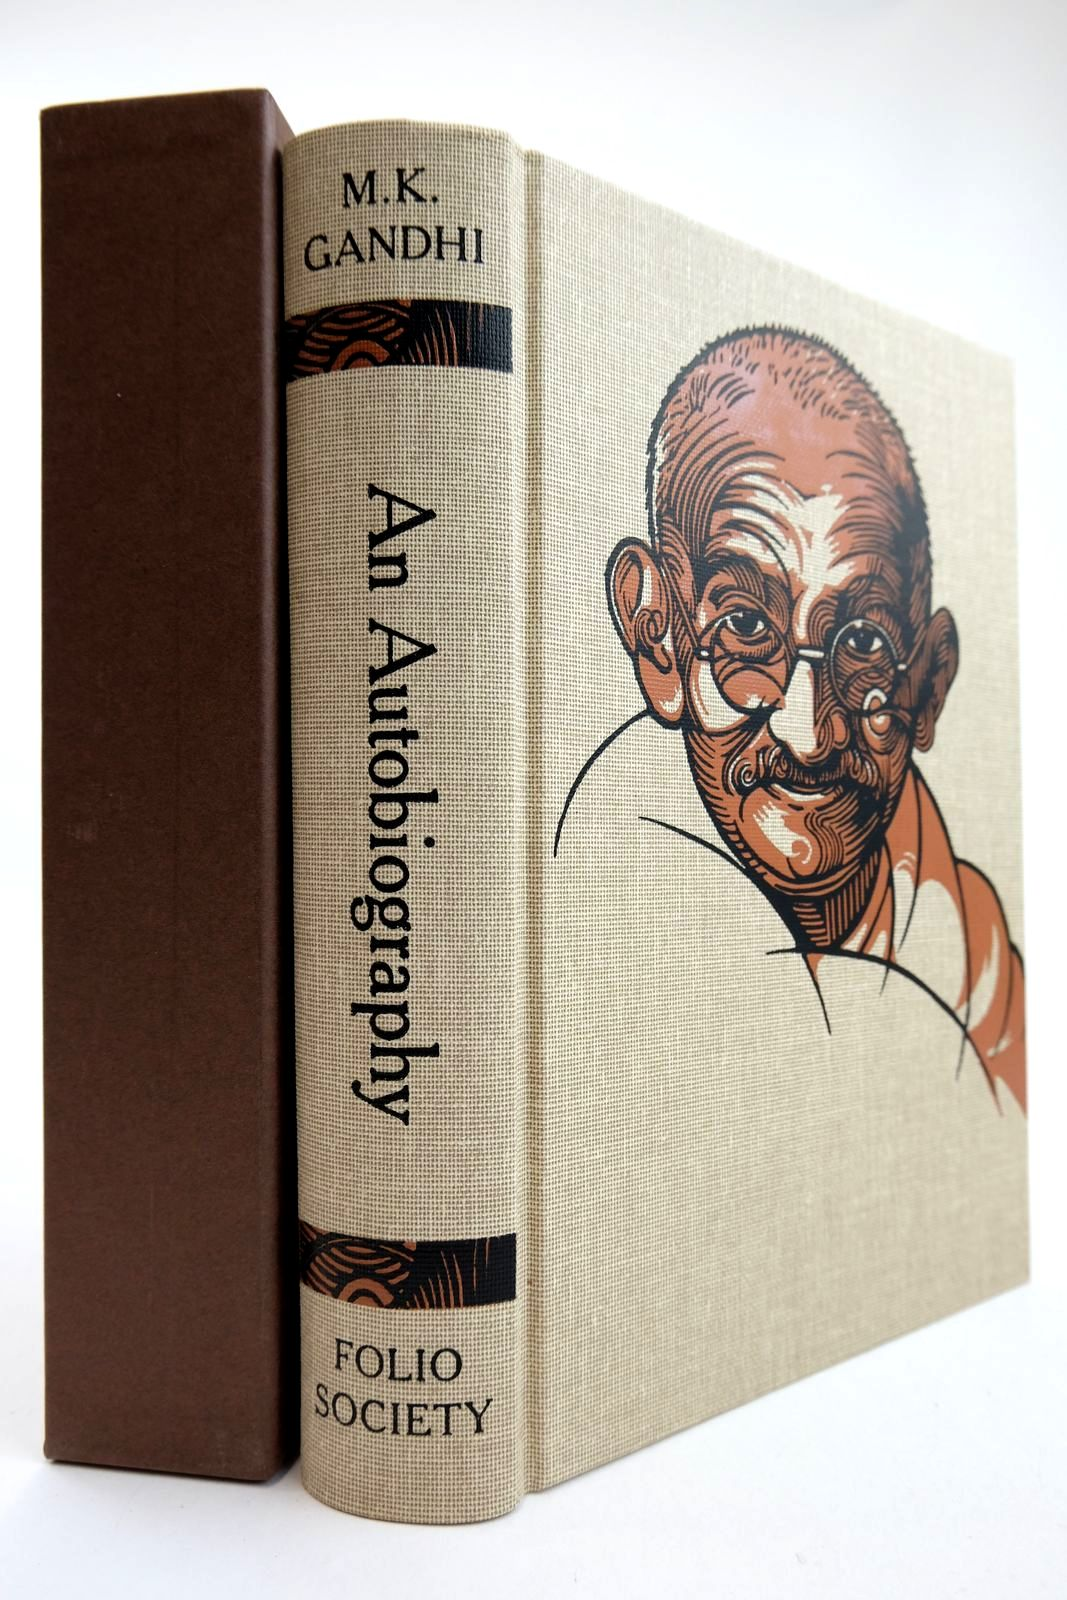 Photo of M.K. GANDHI AN AUTOBIOGRAPHY OR THE STORY OF MY EXPERIMENTS WITH TRUTH- Stock Number: 2132376